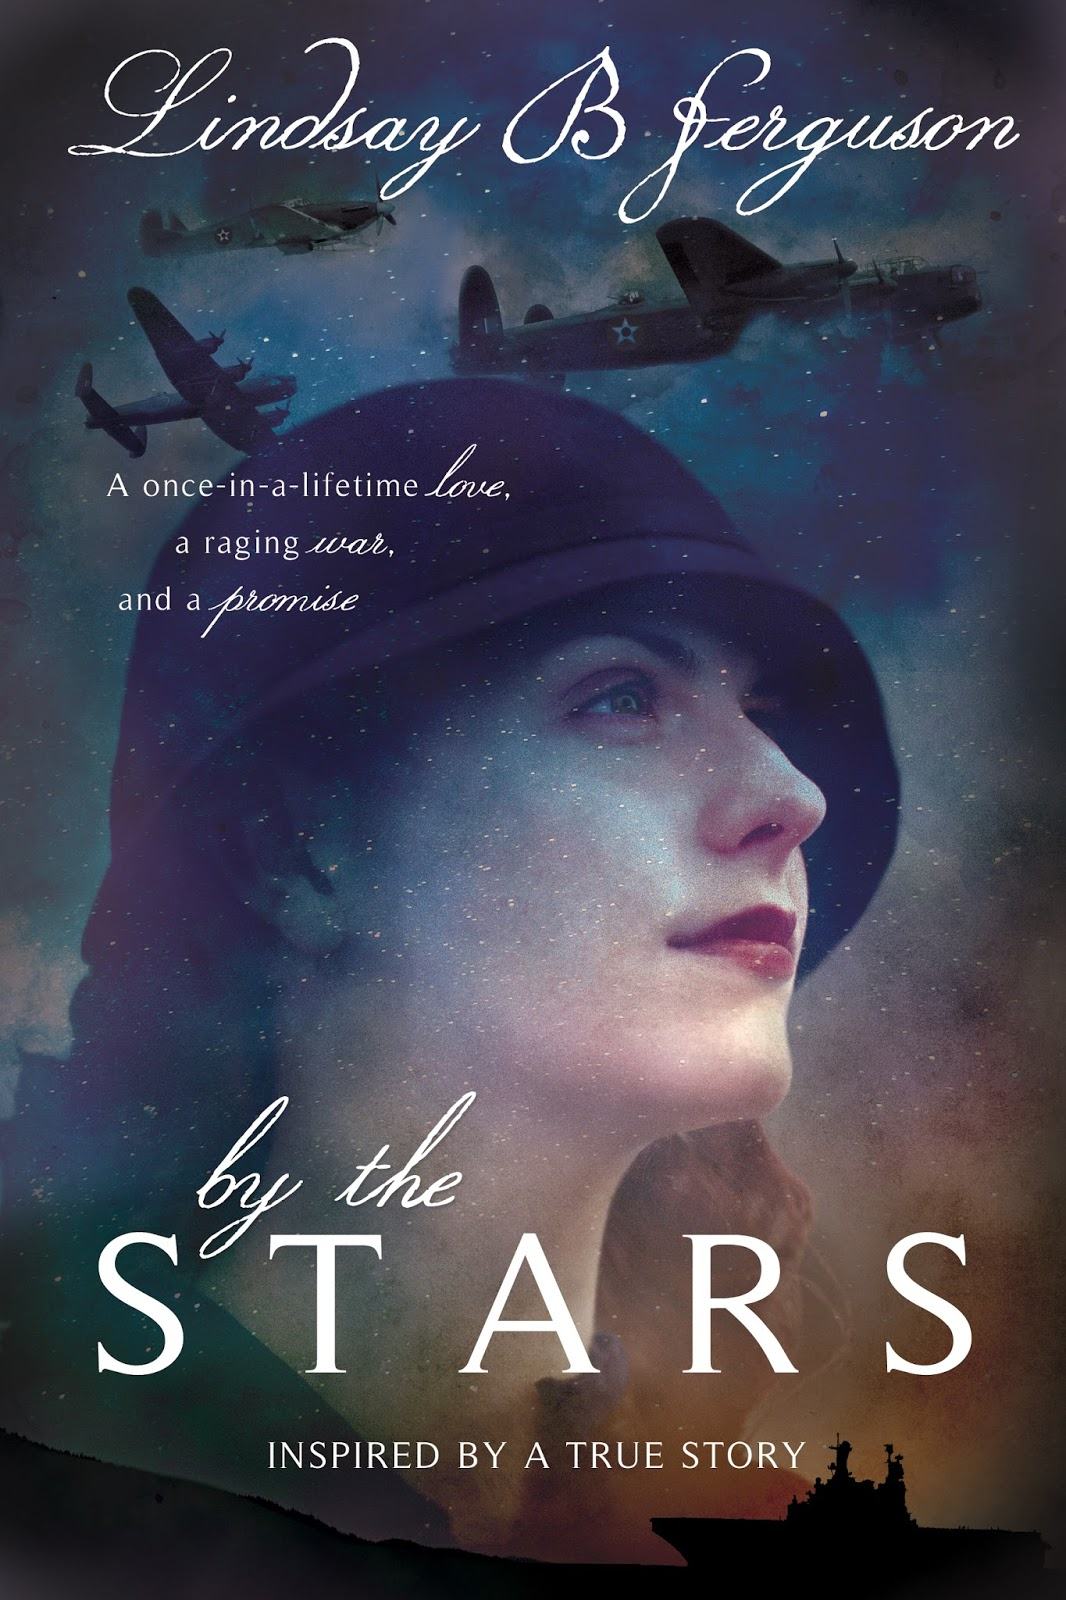 About By The Stars